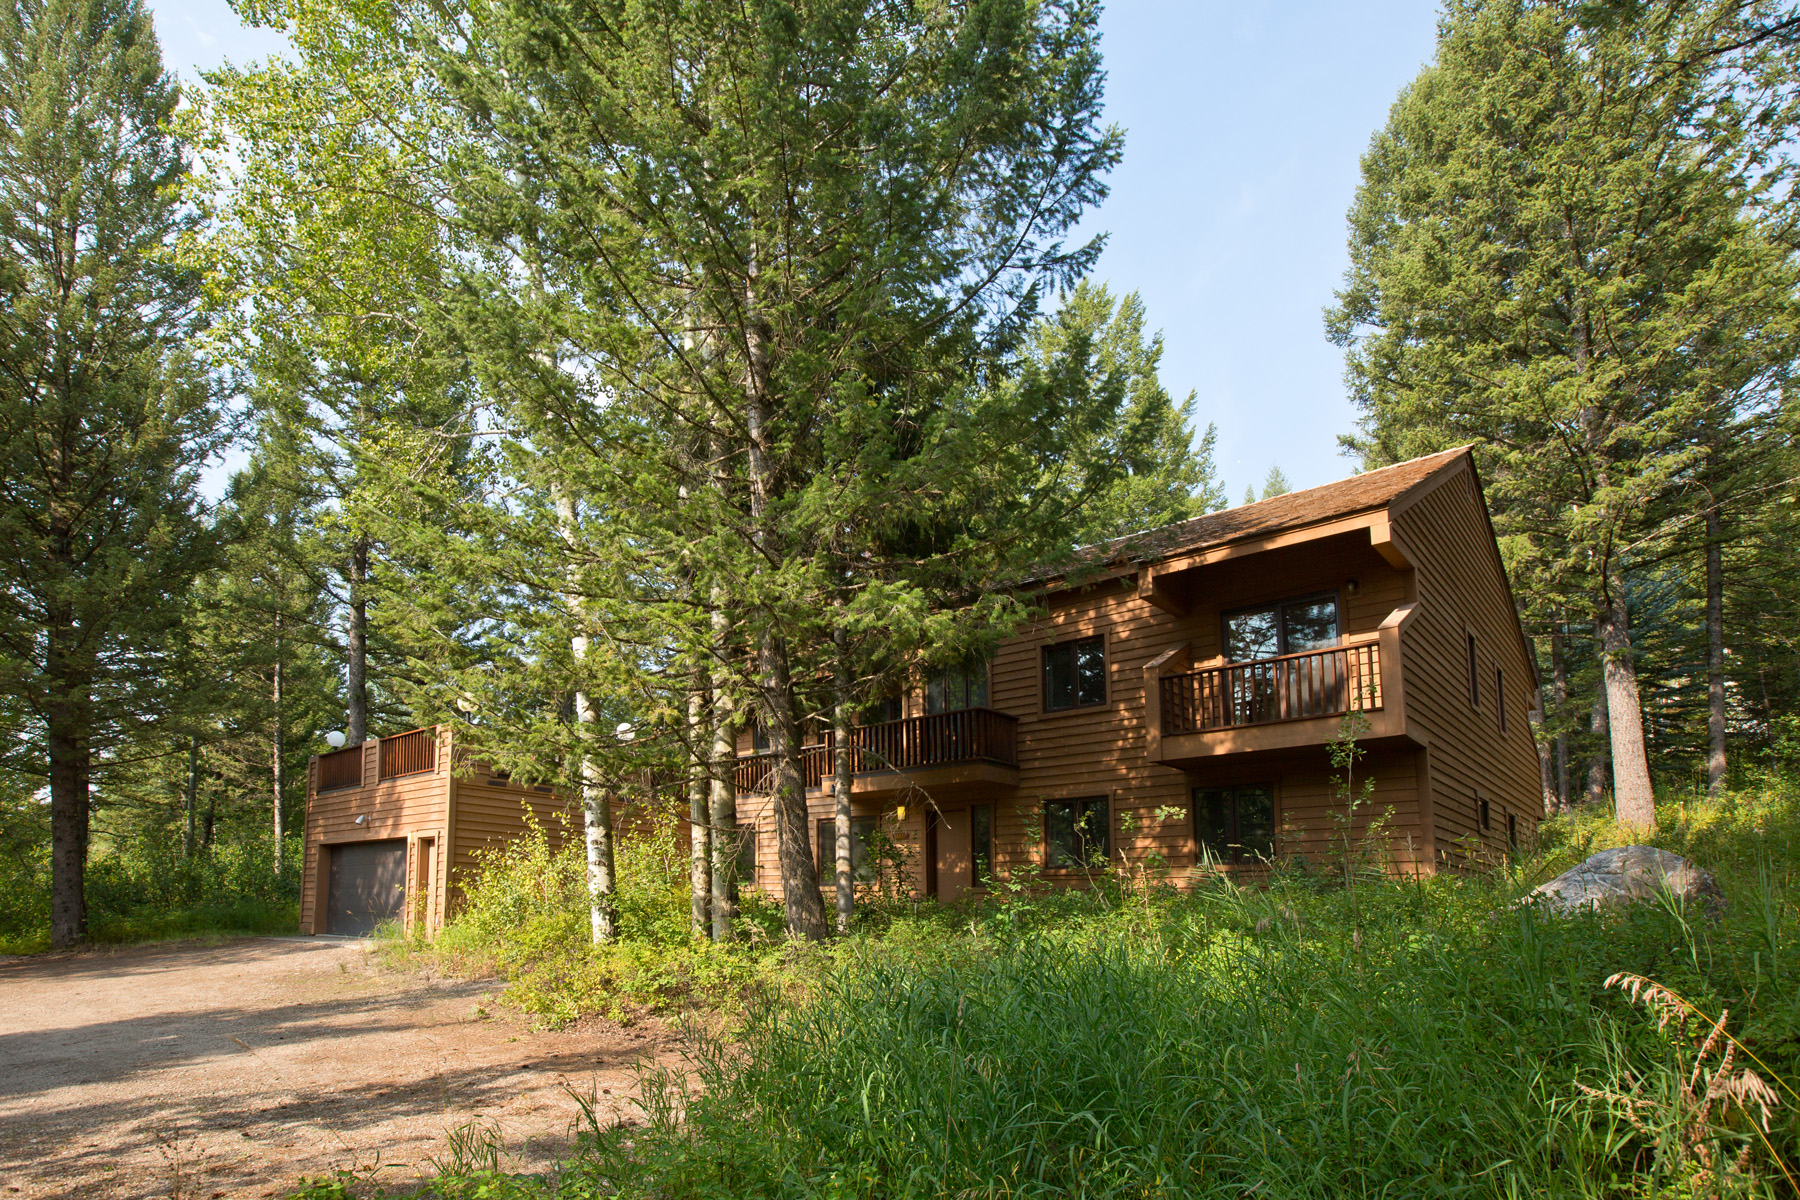 Single Family Home for Sale at Teton Village Ski Chalet 3555 Curtis Teton Village, Wyoming 83025 United States